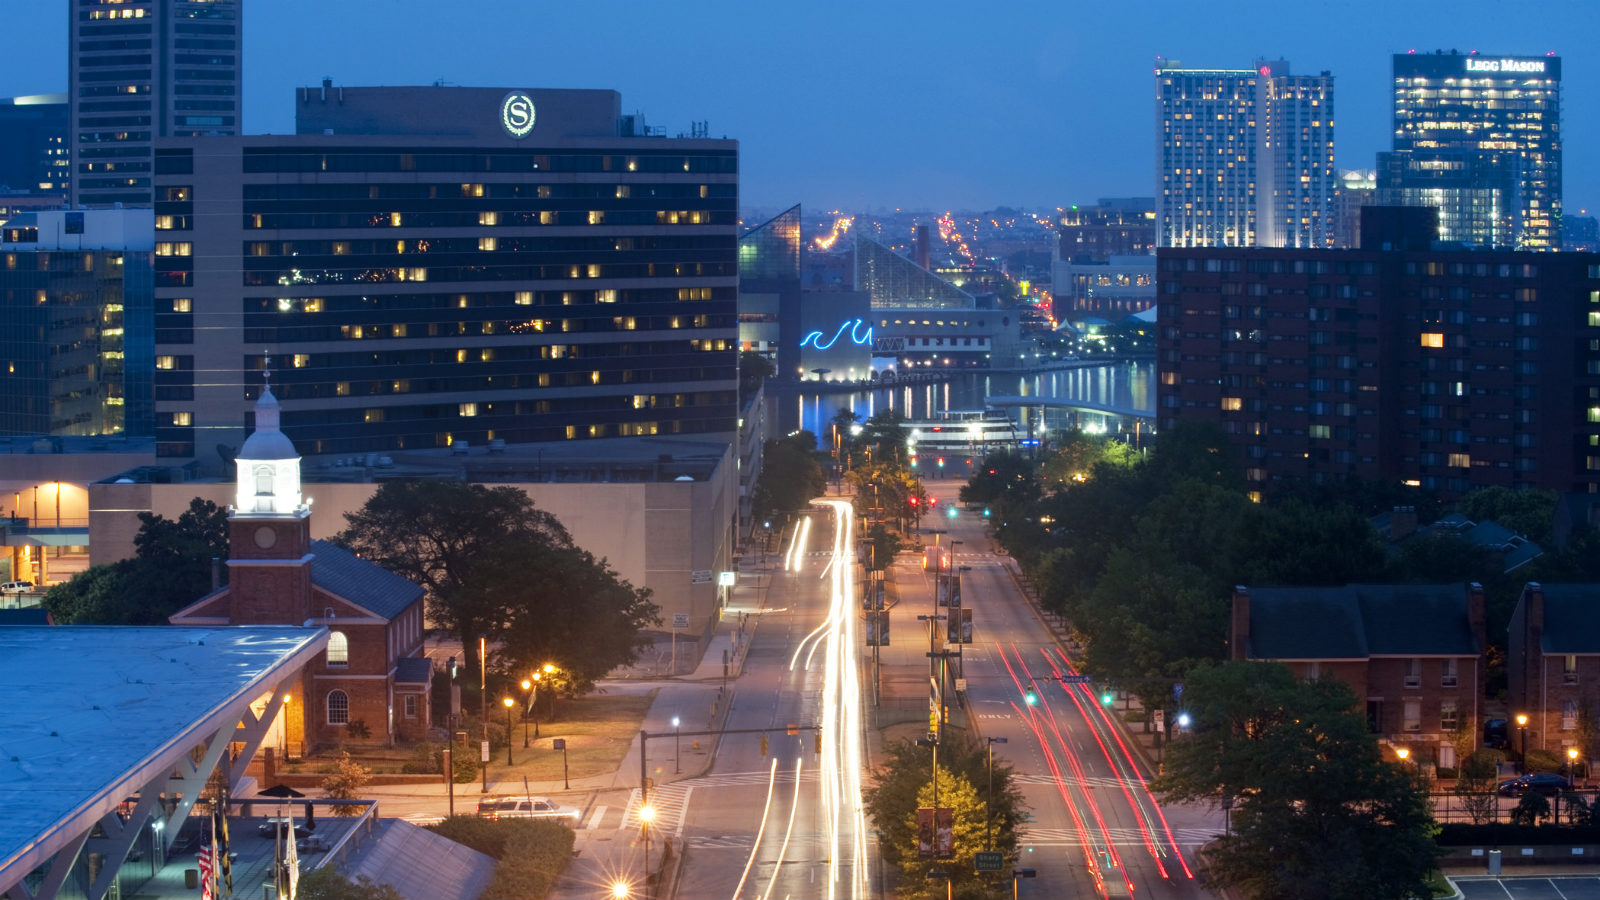 Baltimore Meeting - Baltimore at Night